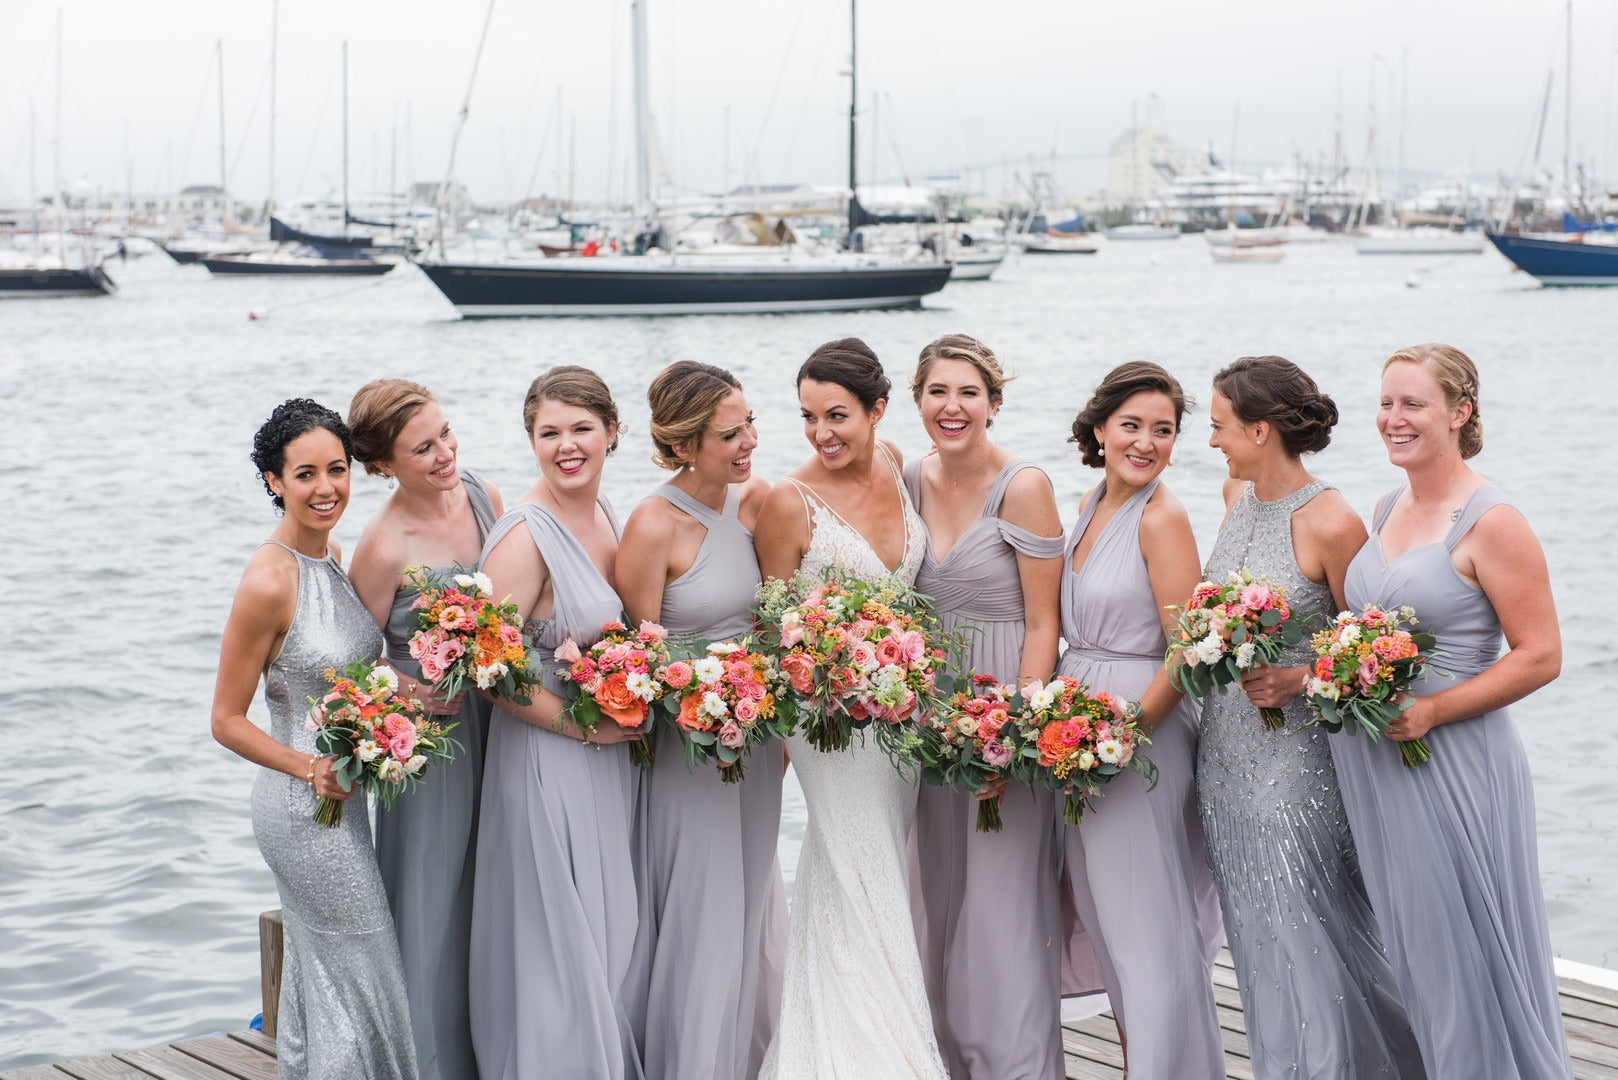 Bride and Bridesmaids | A Scenic Wedding Off the Coast of Rhode Island | Kate Aspen